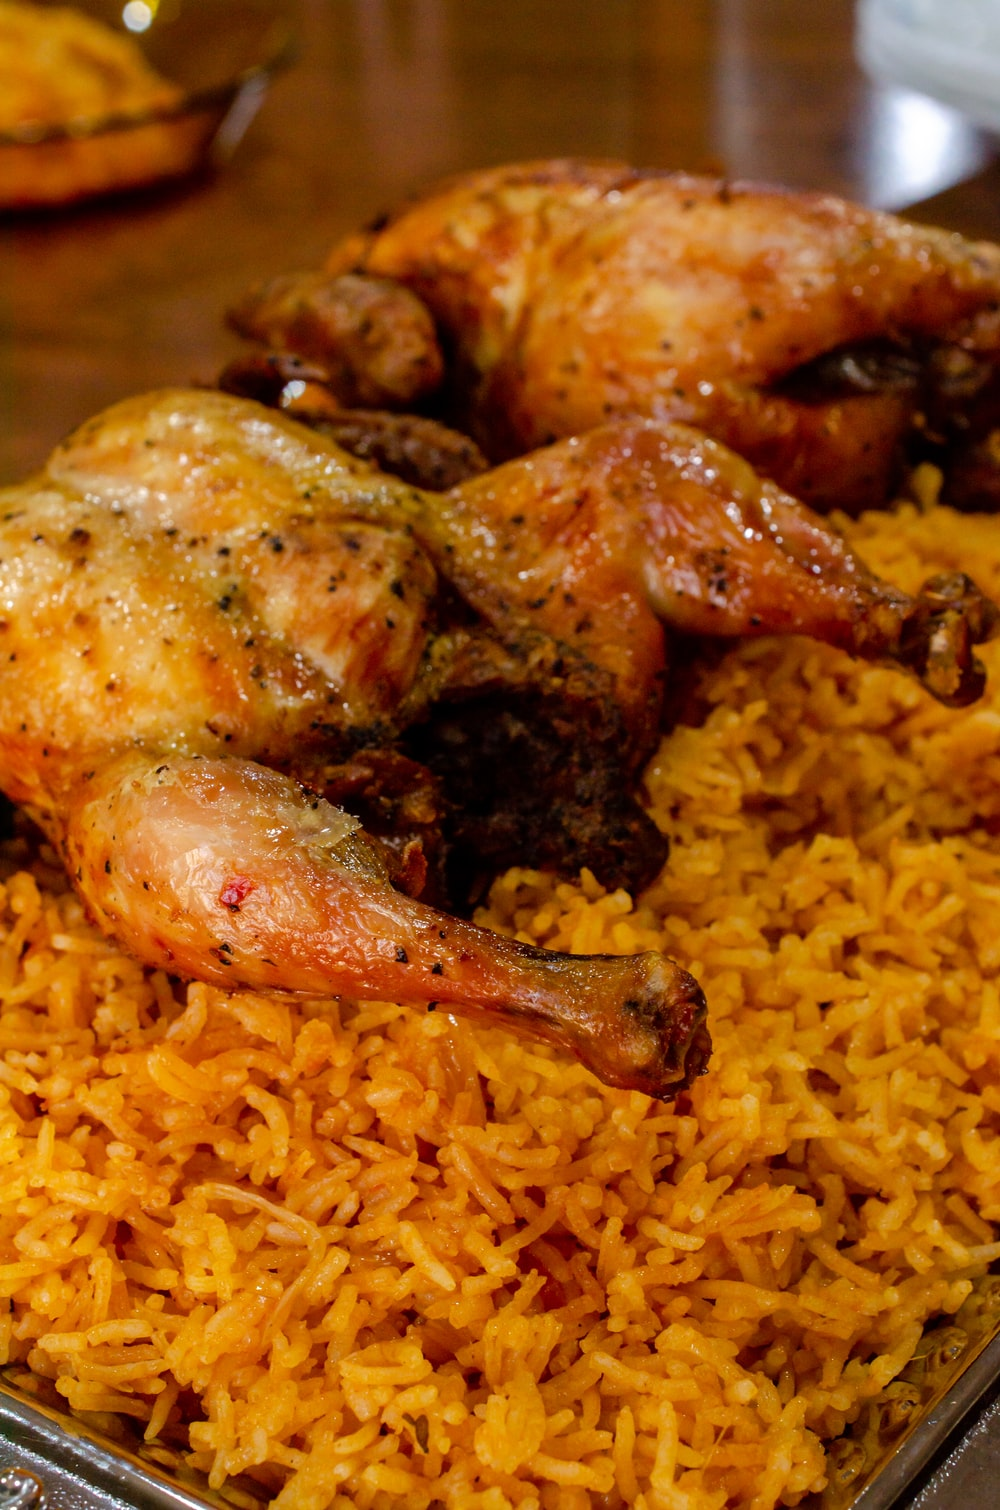 fried chicken on yellow rice